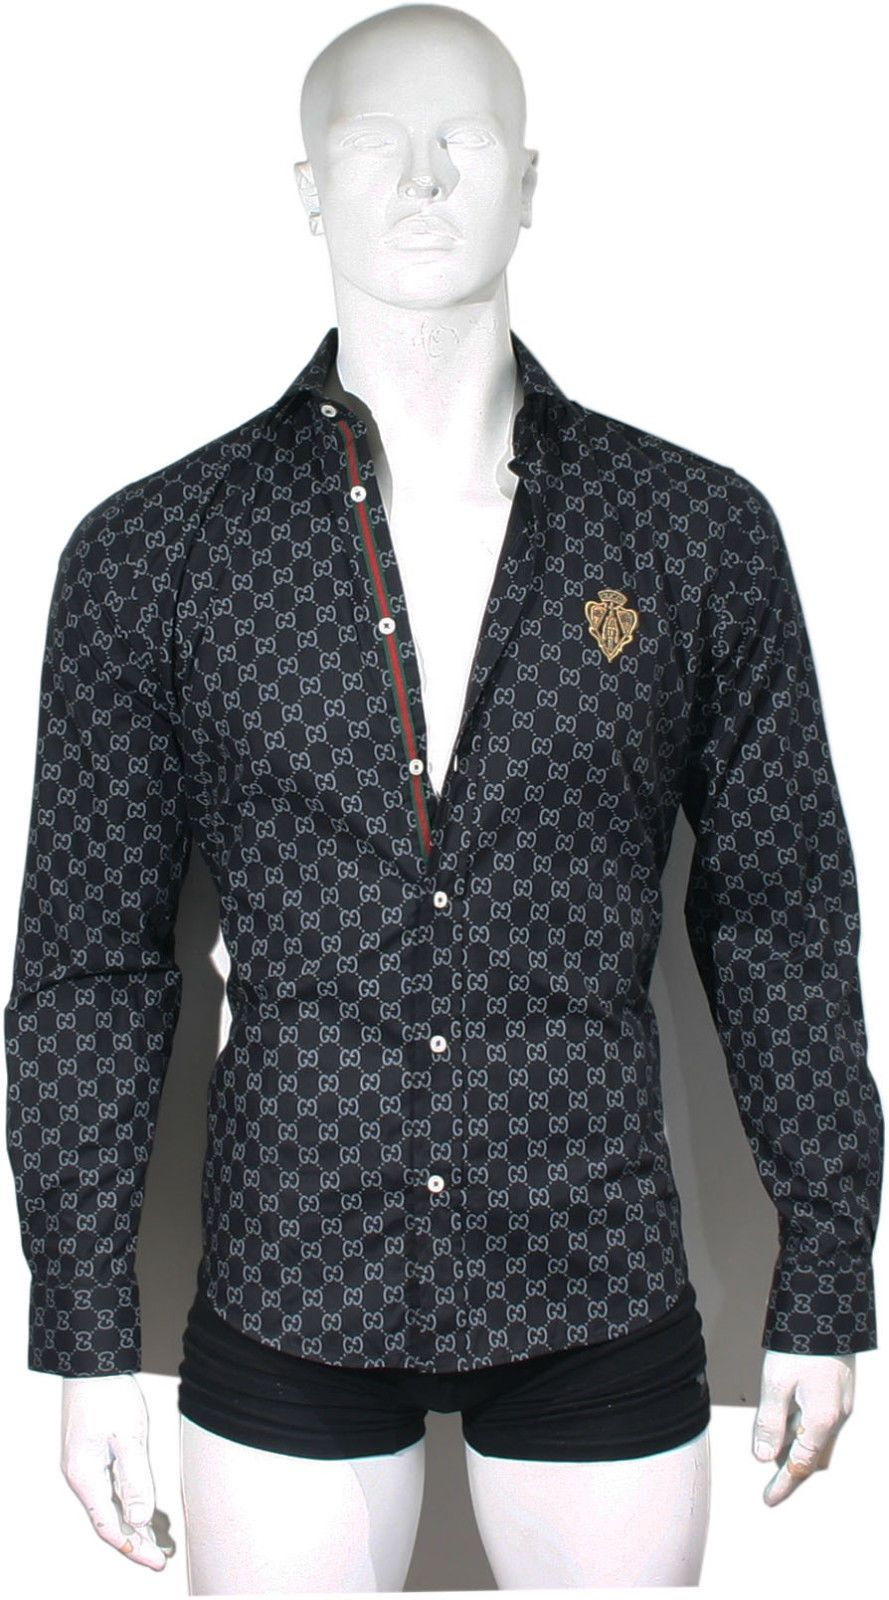 da9a5325 Black Color New GG Monogram Design Men Gucci Dress Shirt M L XL | eBay